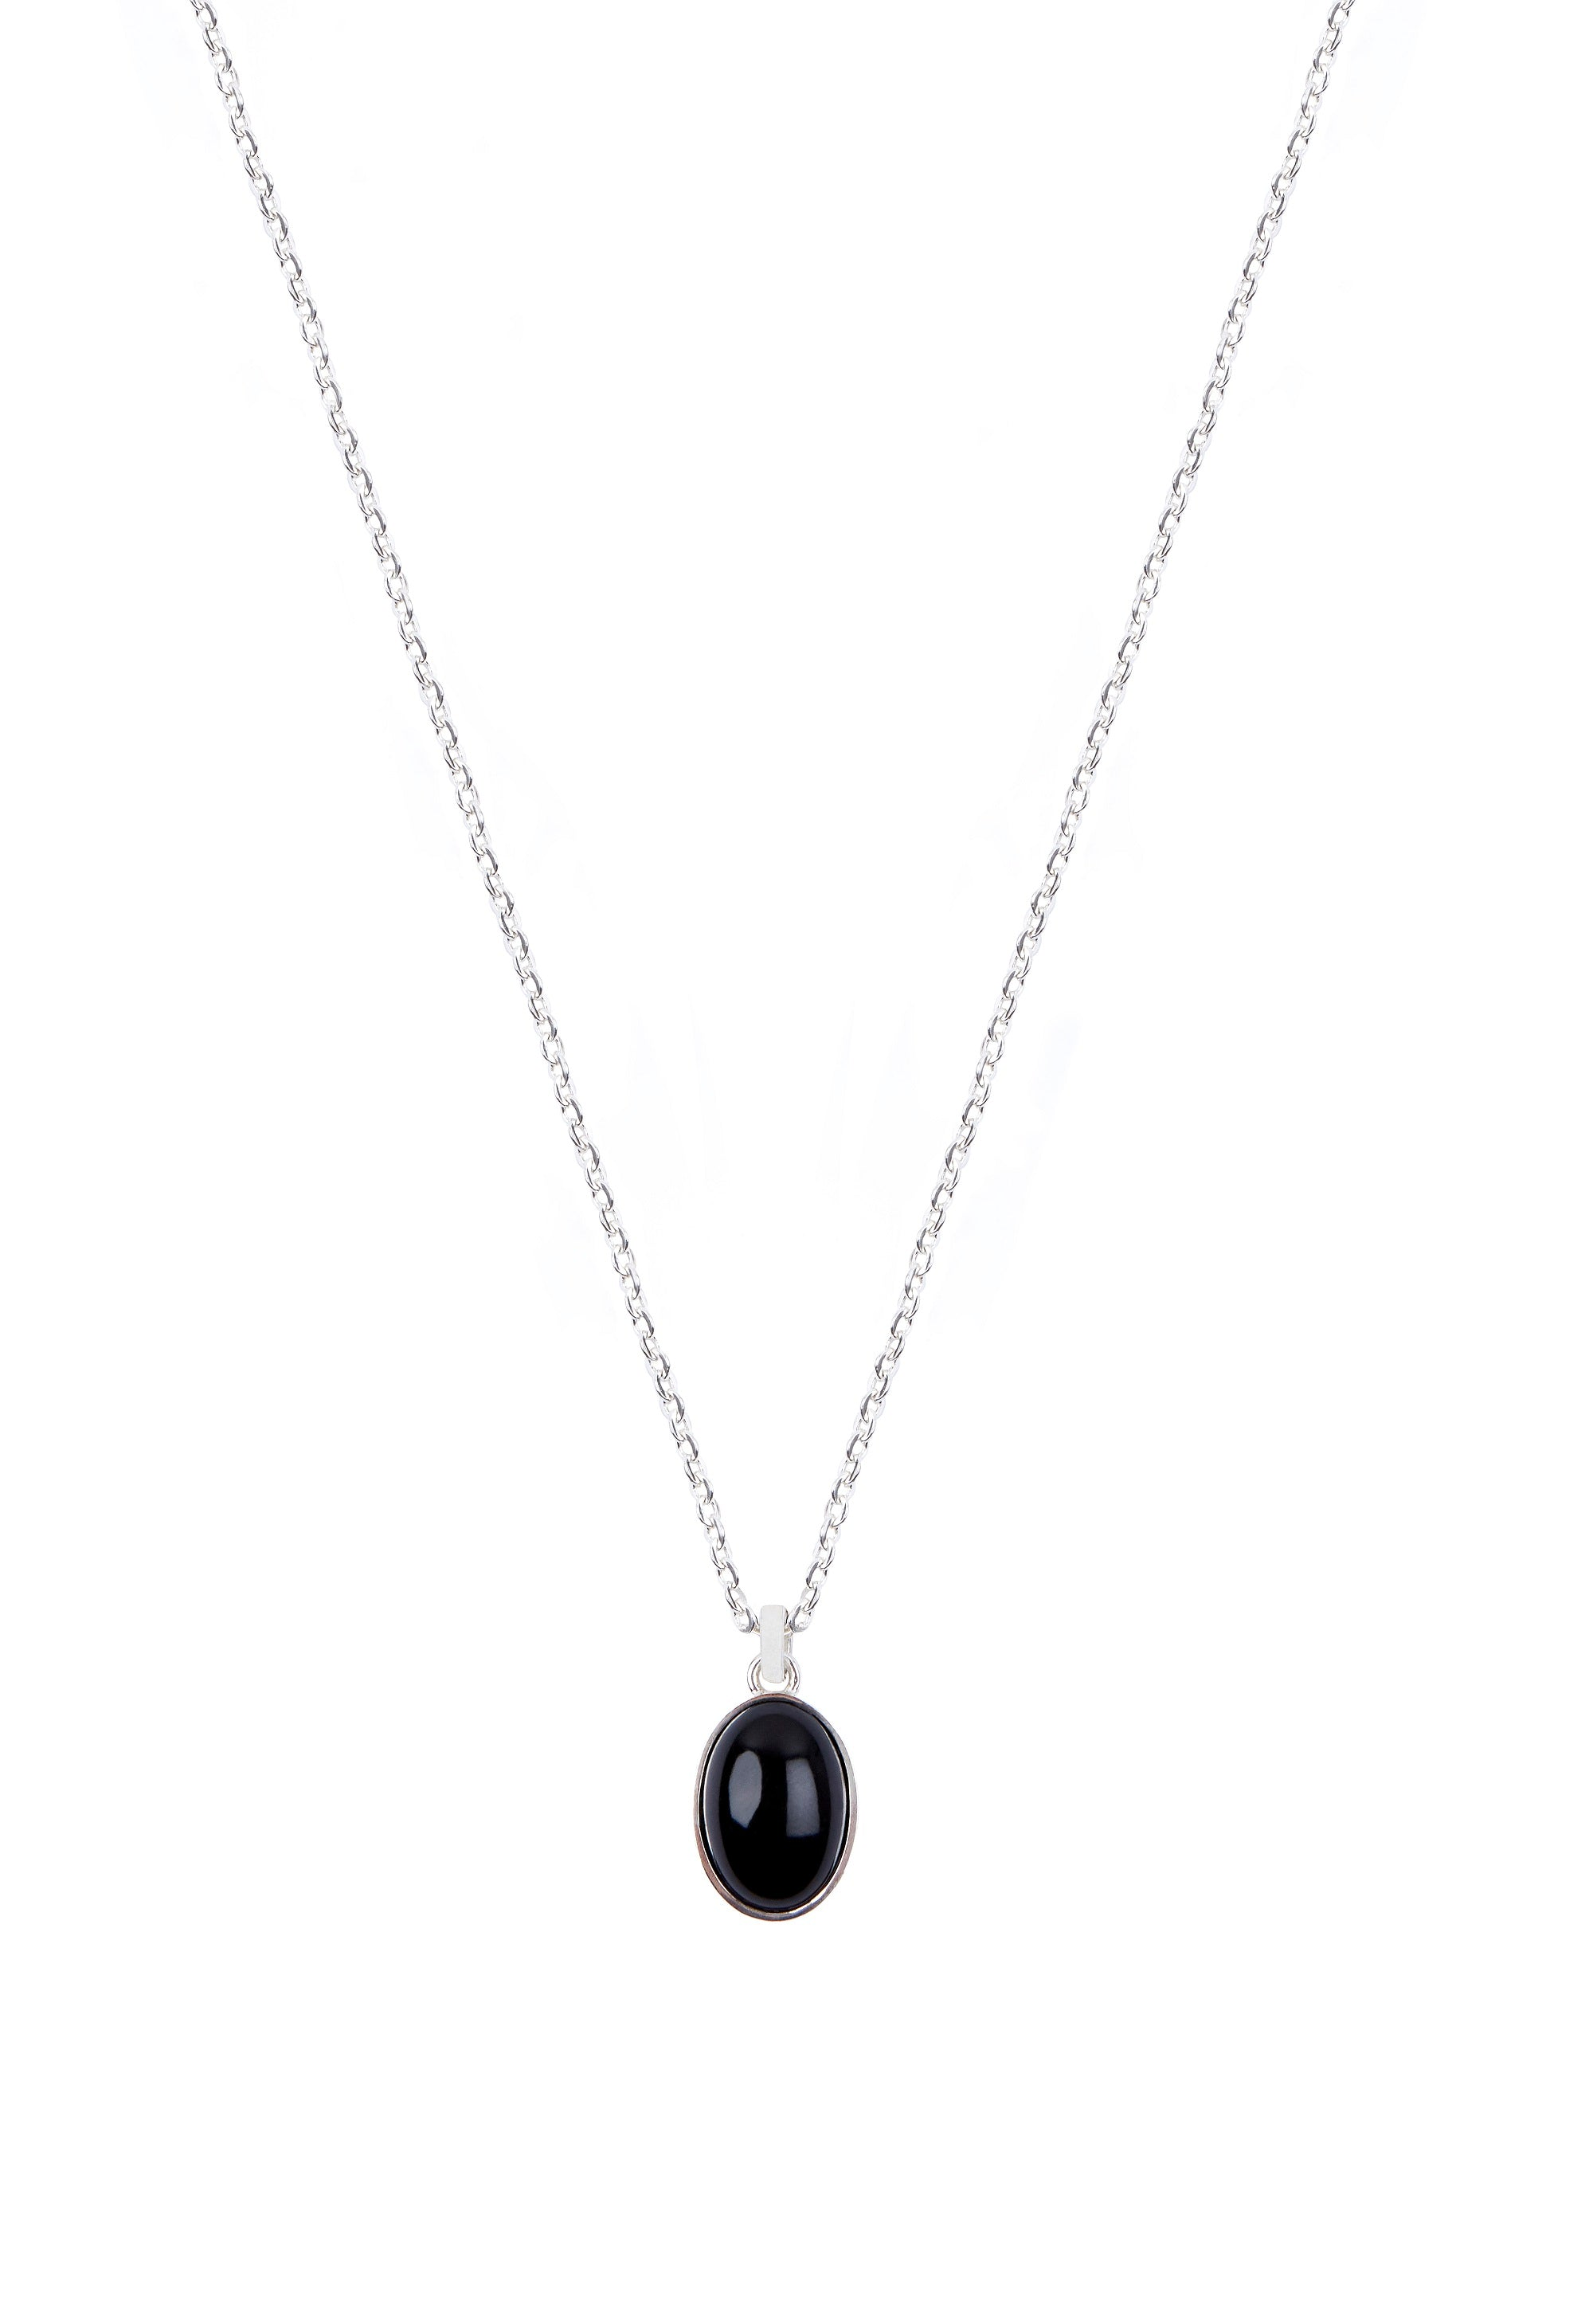 Oval Cabochon Onix Necklace Silver